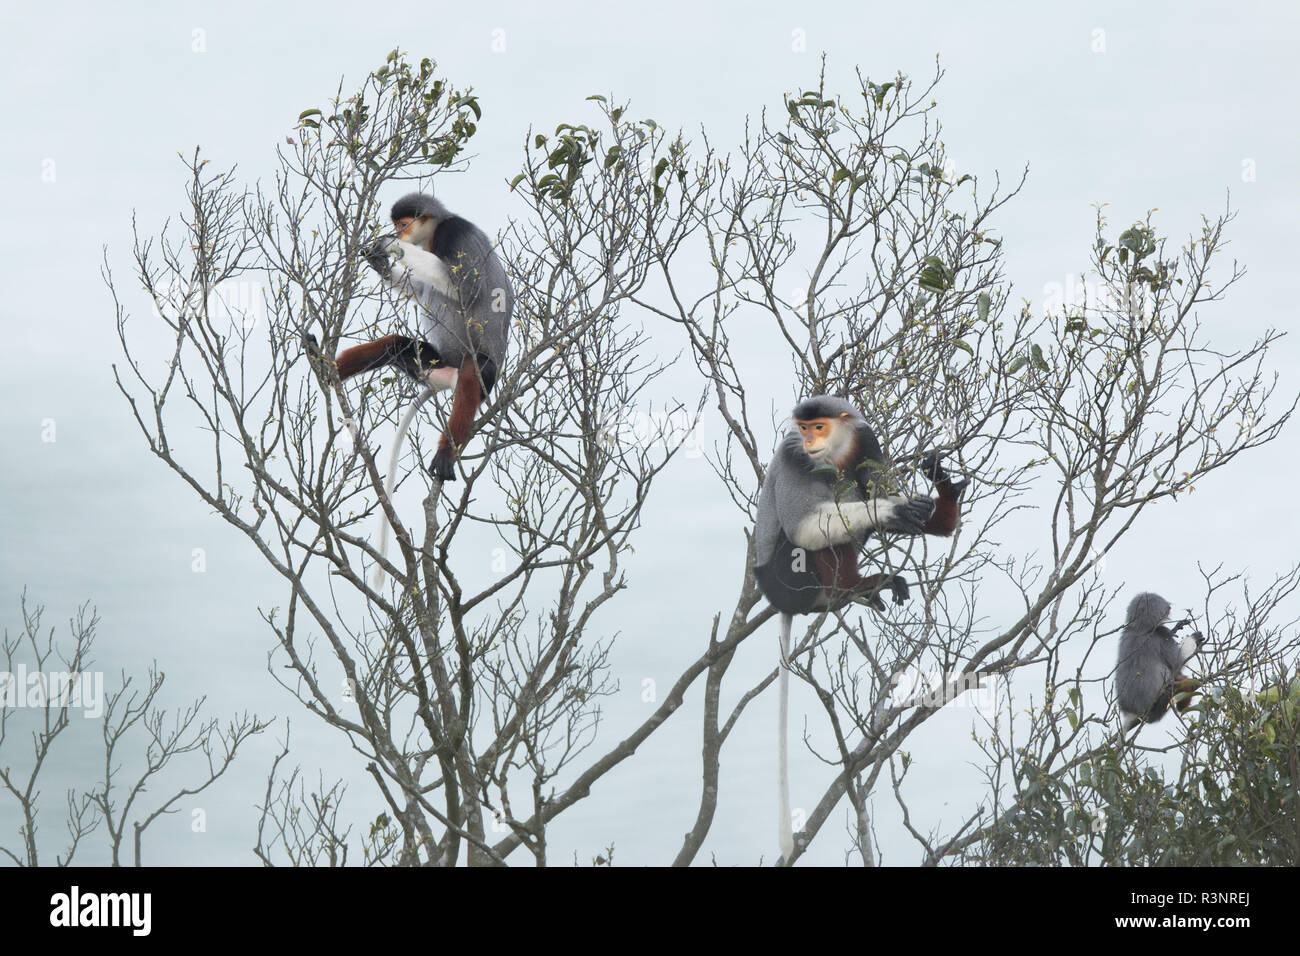 Red-shanked Douc langur (Pygathrix nemaeus) Adult male and females on a tree, Vietnam - Stock Image